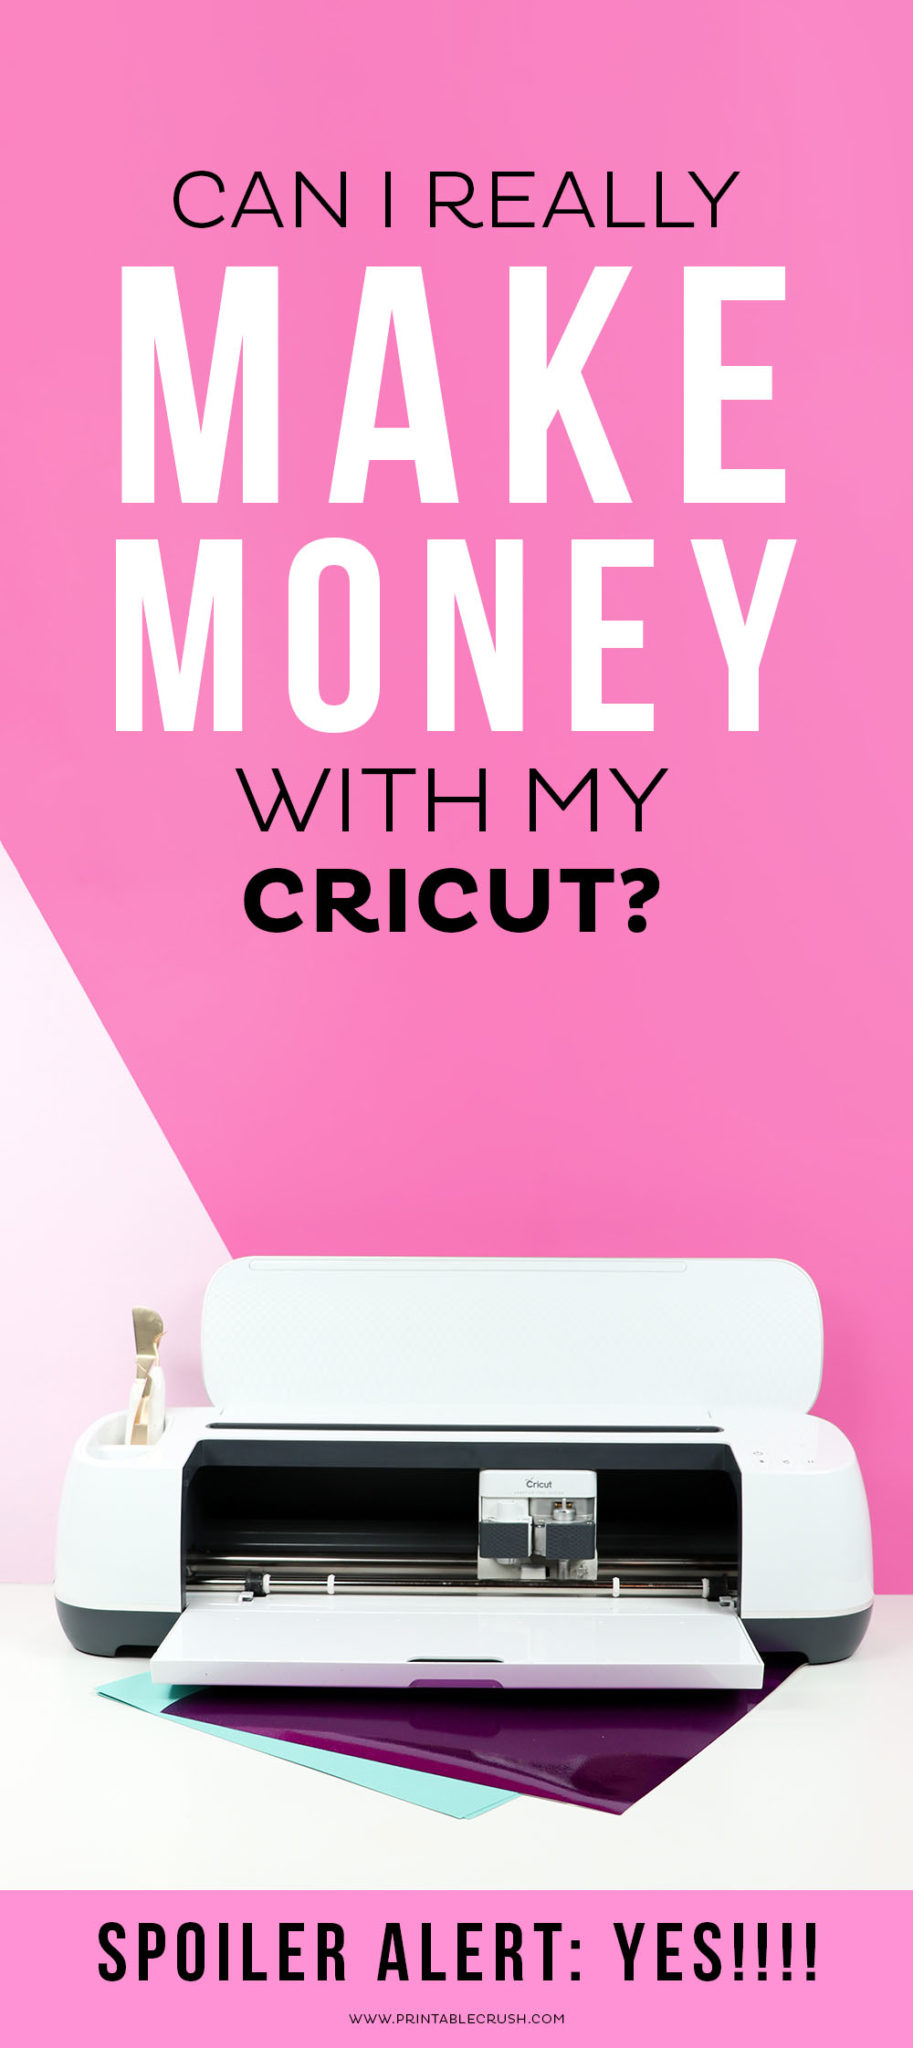 Can I Make Money with my Cricut?